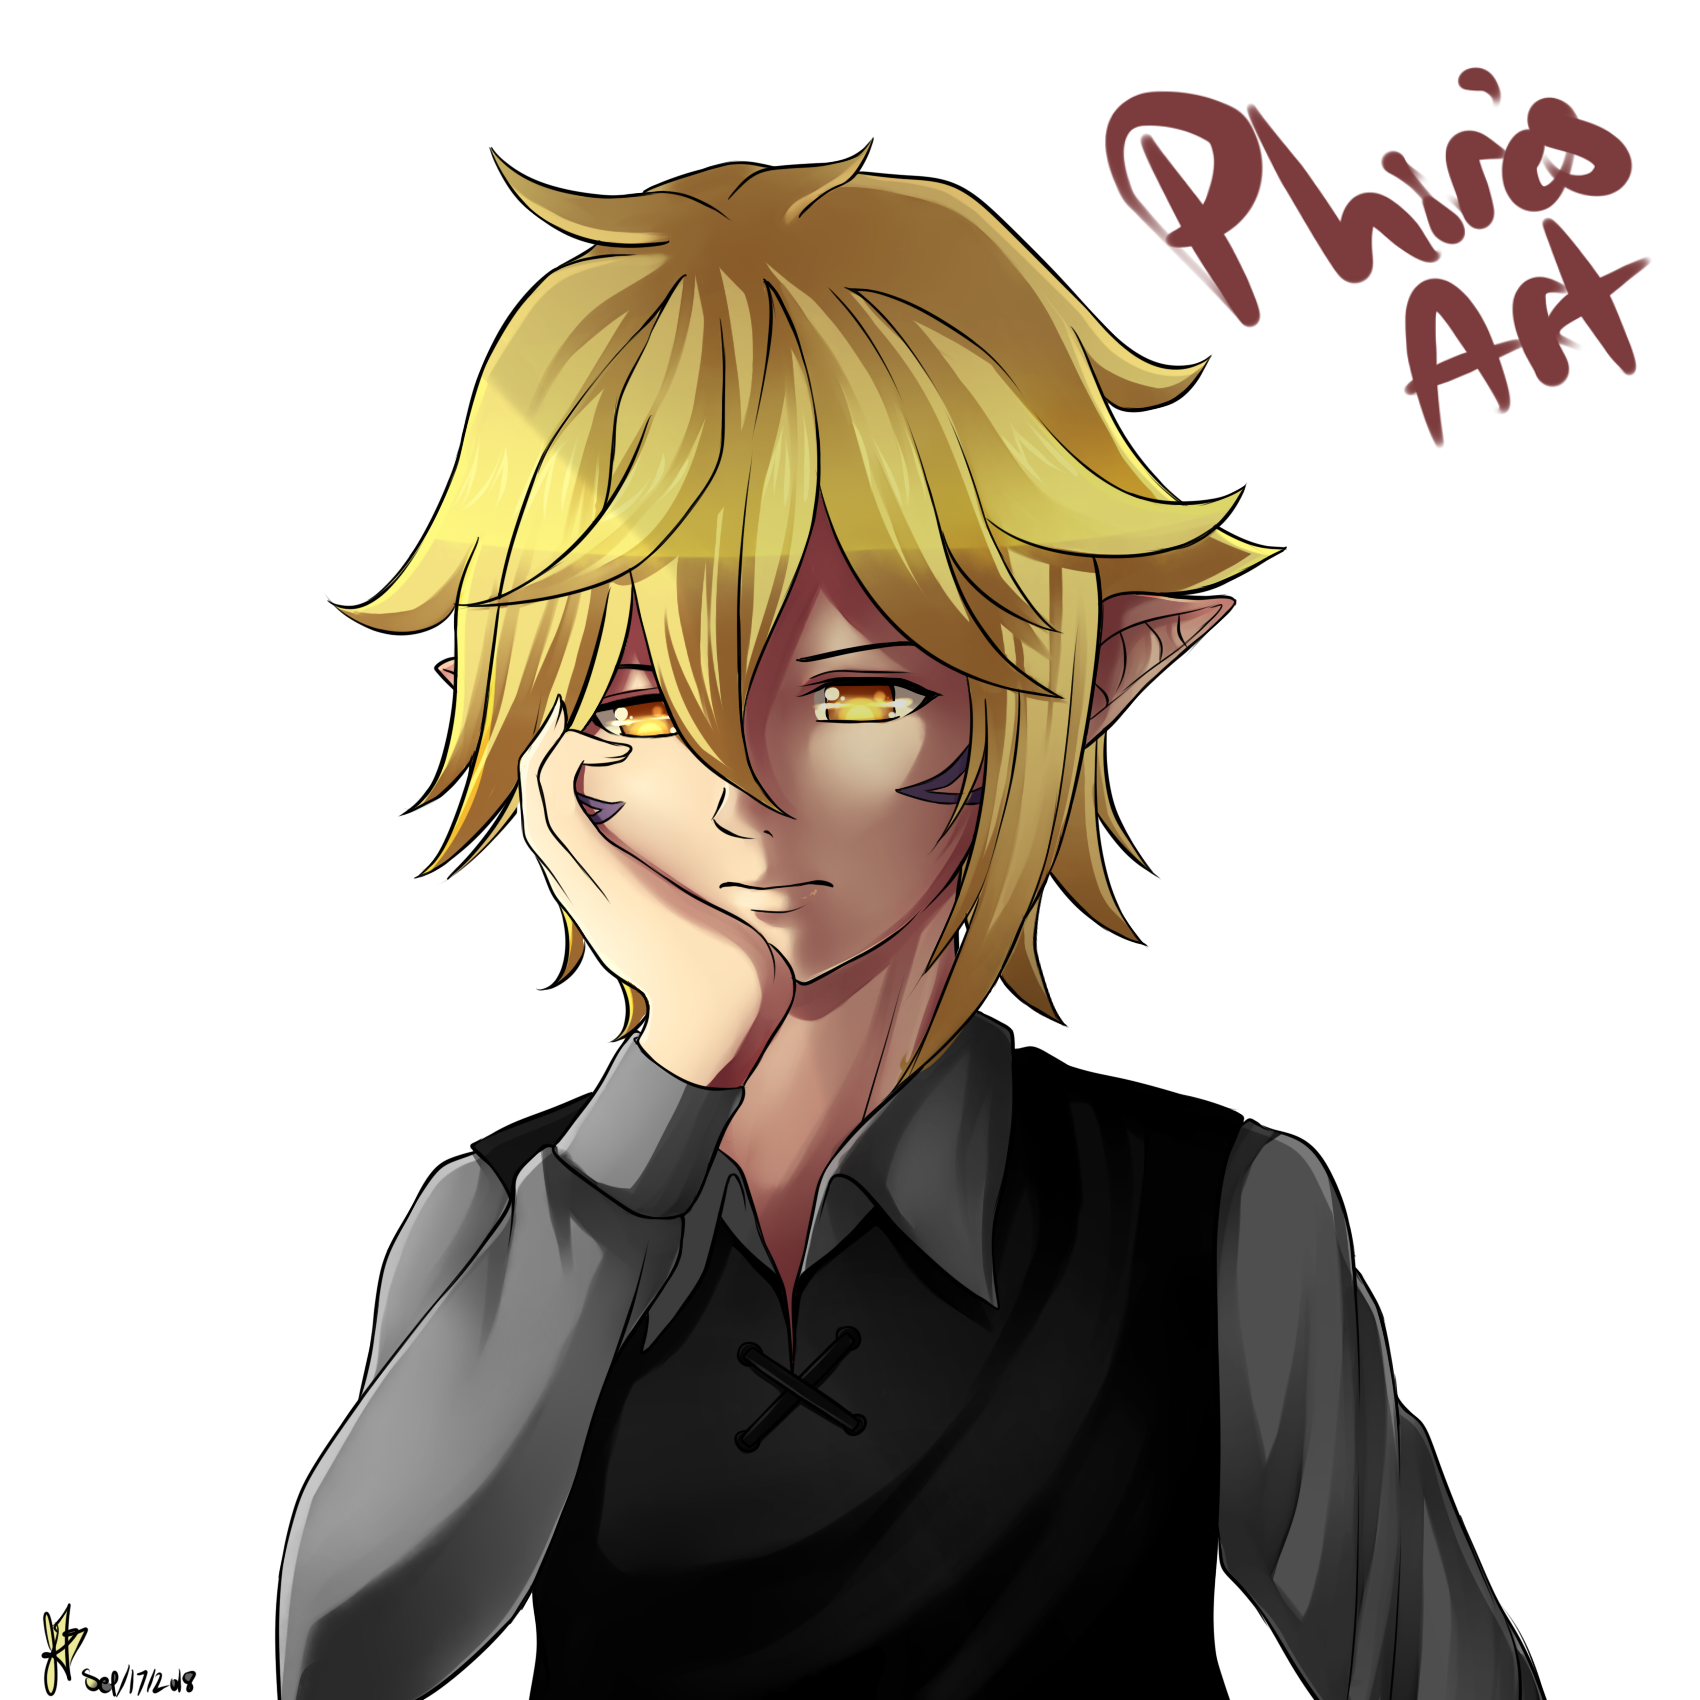 odre_commission_by_janepitt-dcn4k9q.png